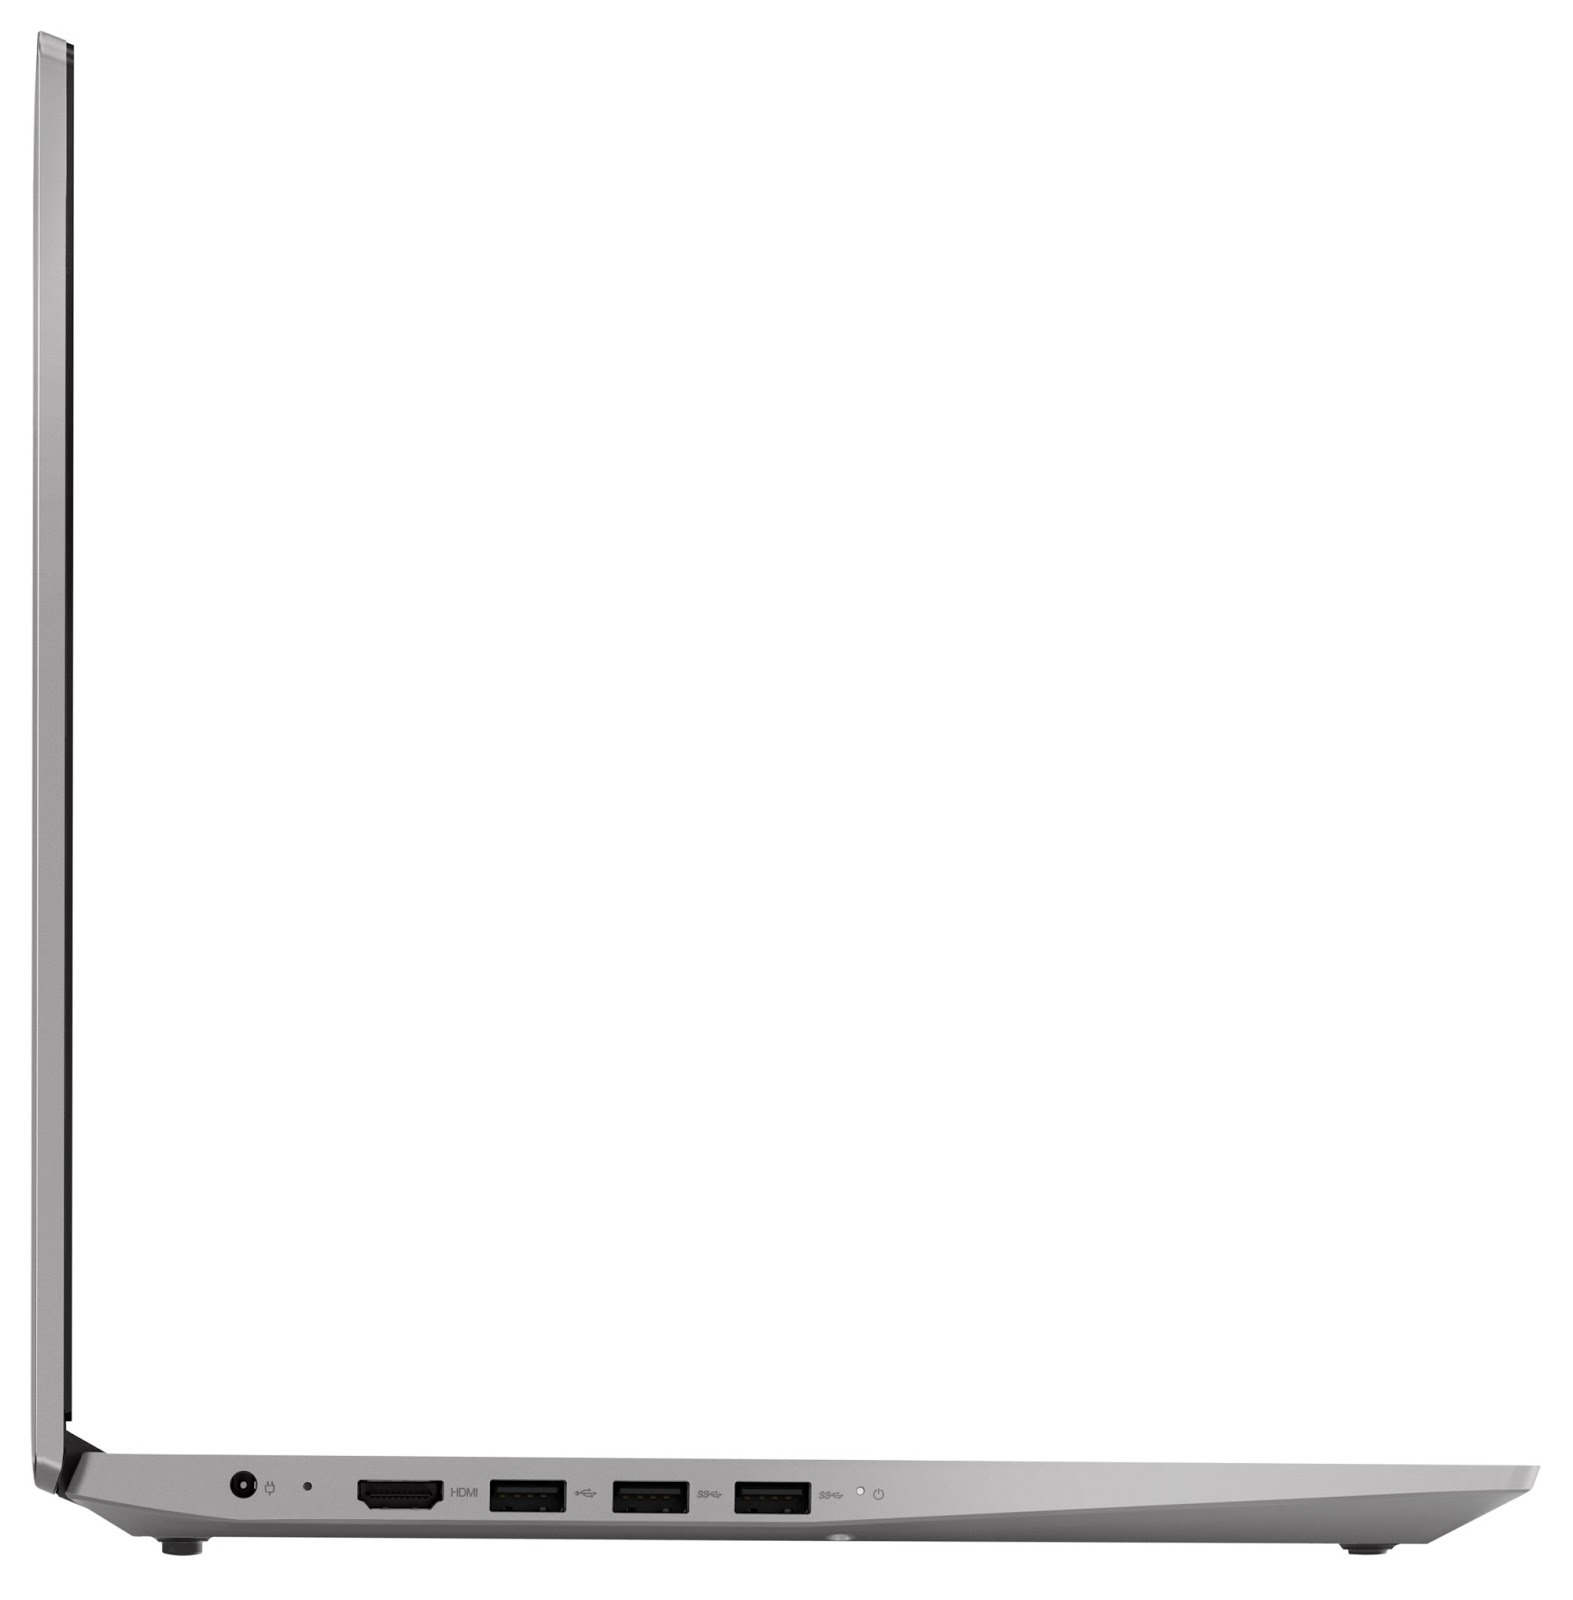 Фото 5. Ноутбук Lenovo ideapad S145-15IGM Platinum Grey (81MX003JRE)